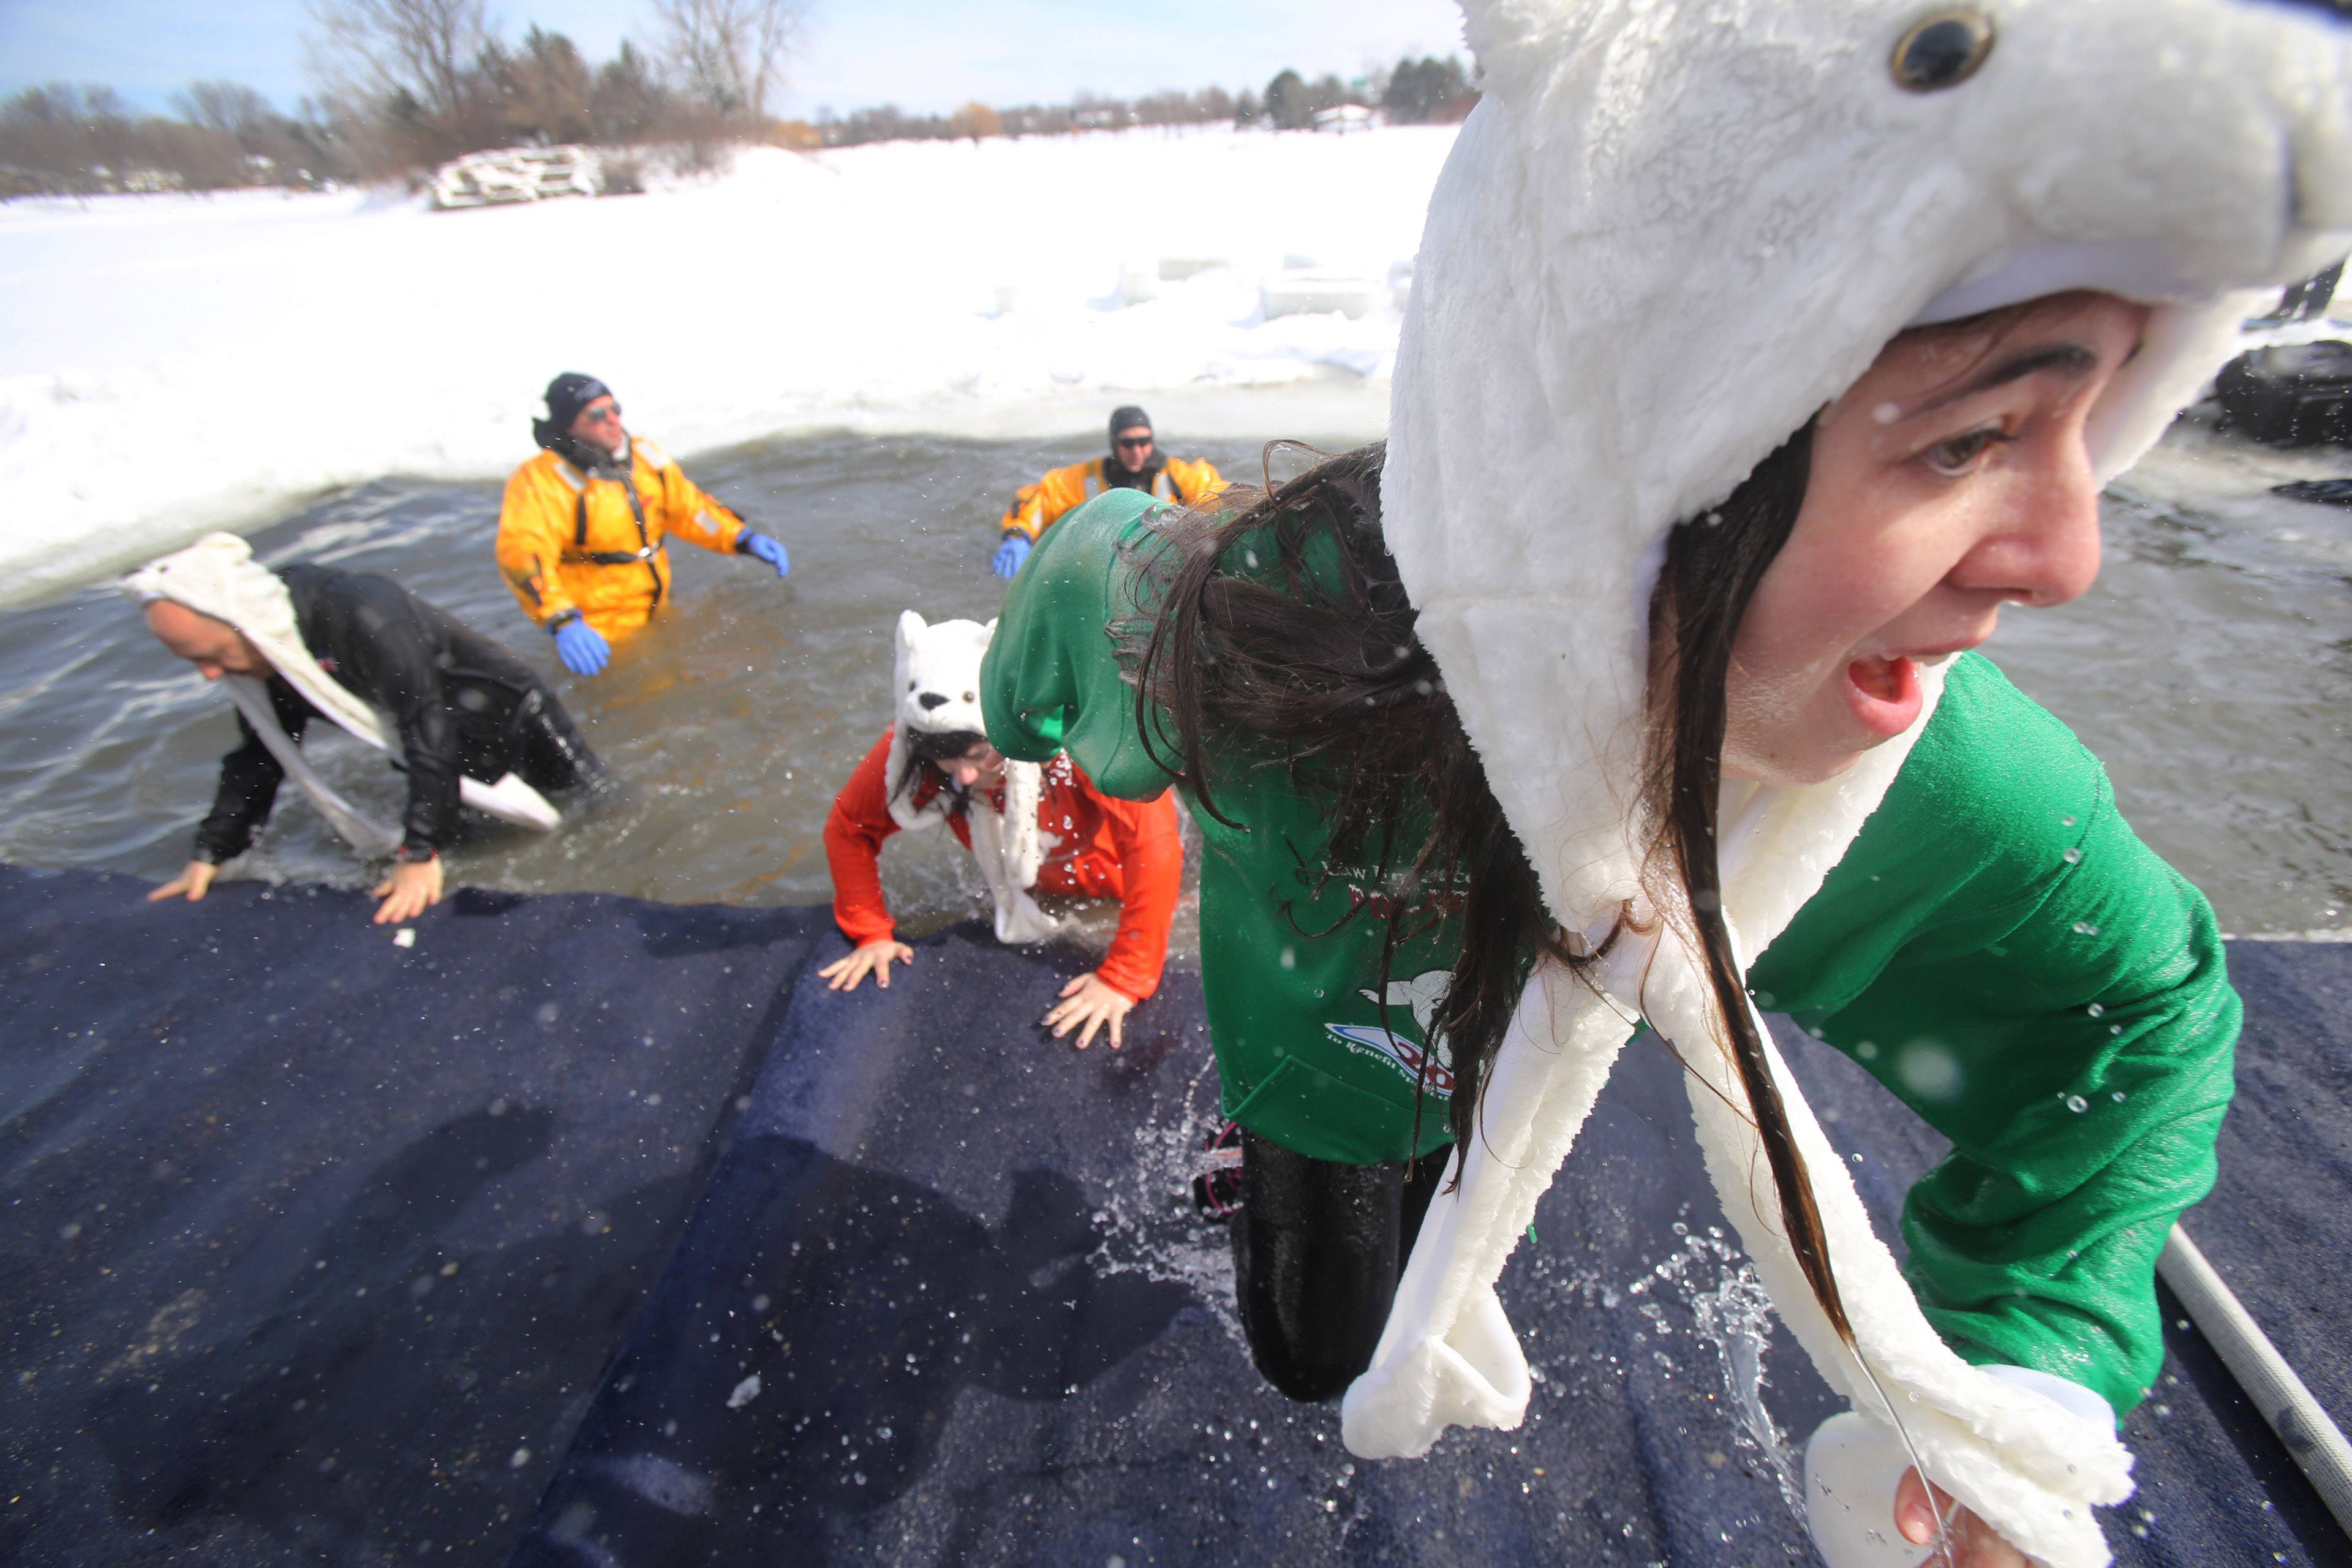 Alex Laner of Buffalo Grove can't get out of the water fast enough Sunday during the Polar Plunge at Twin Lakes Recreation Area in Palatine. The event raised more than $100,000 for Special Olympics.